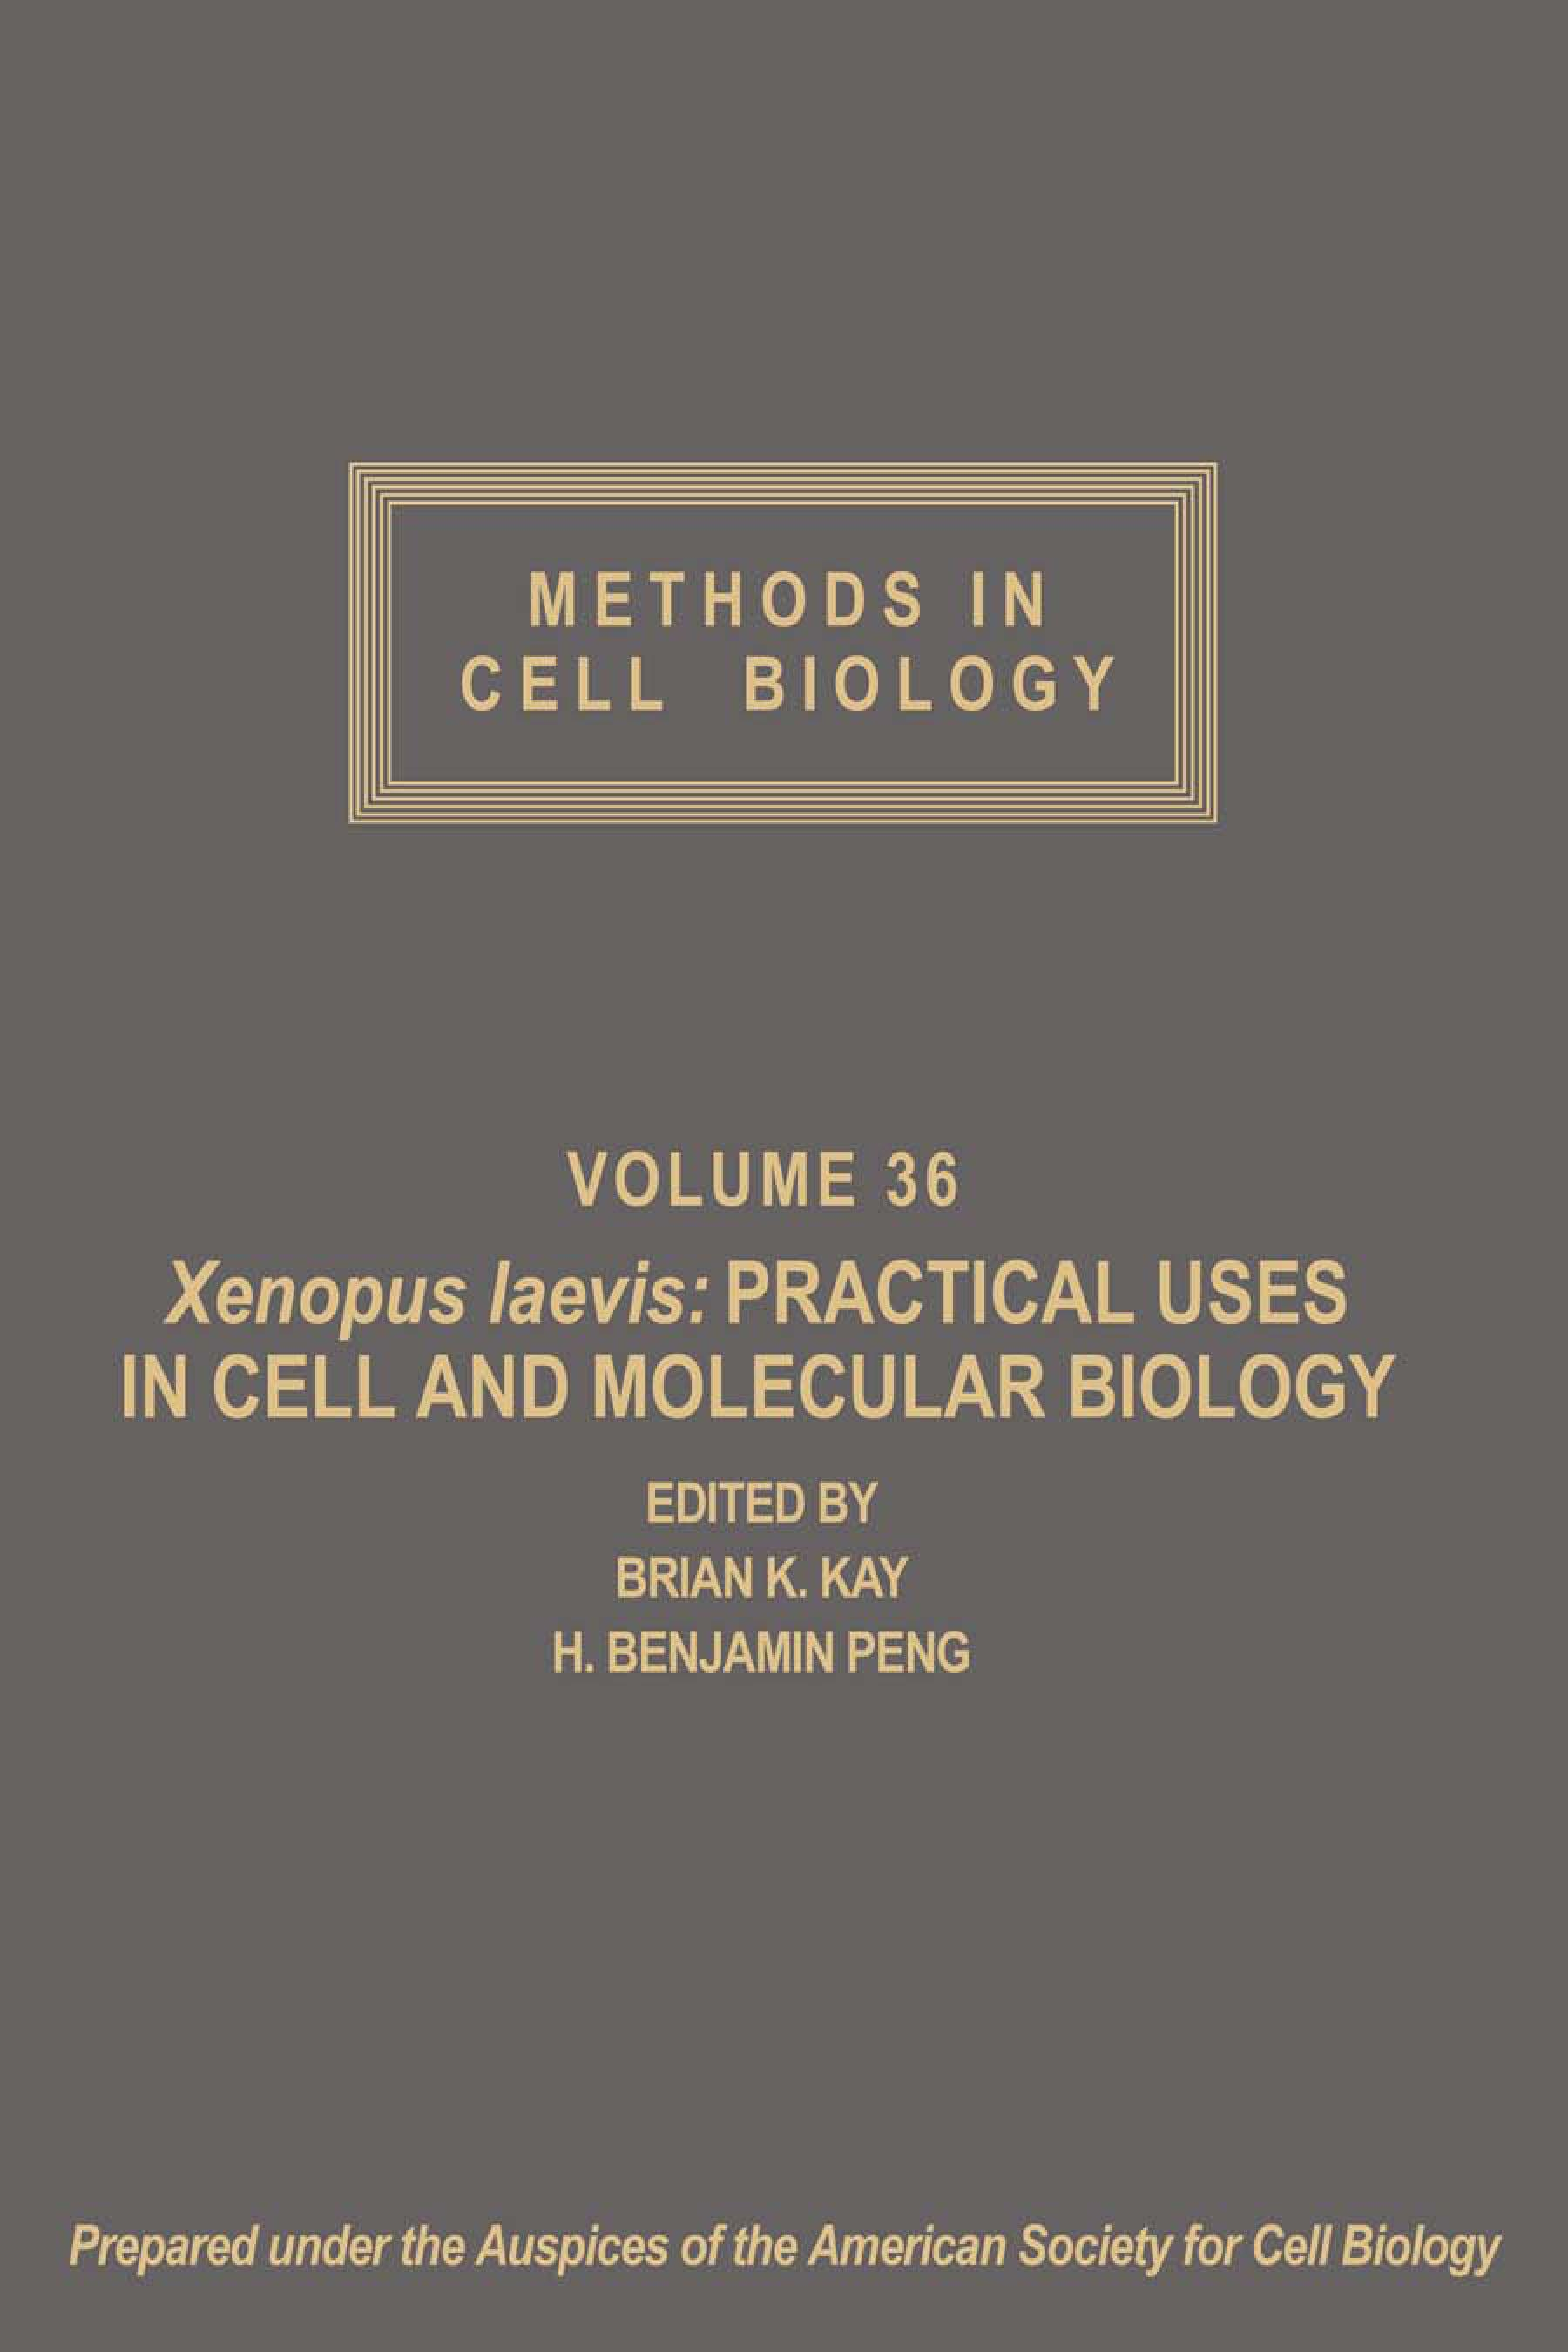 Xenopus laevis: Practical Uses in Cell and Molecular Biology: Volume 36